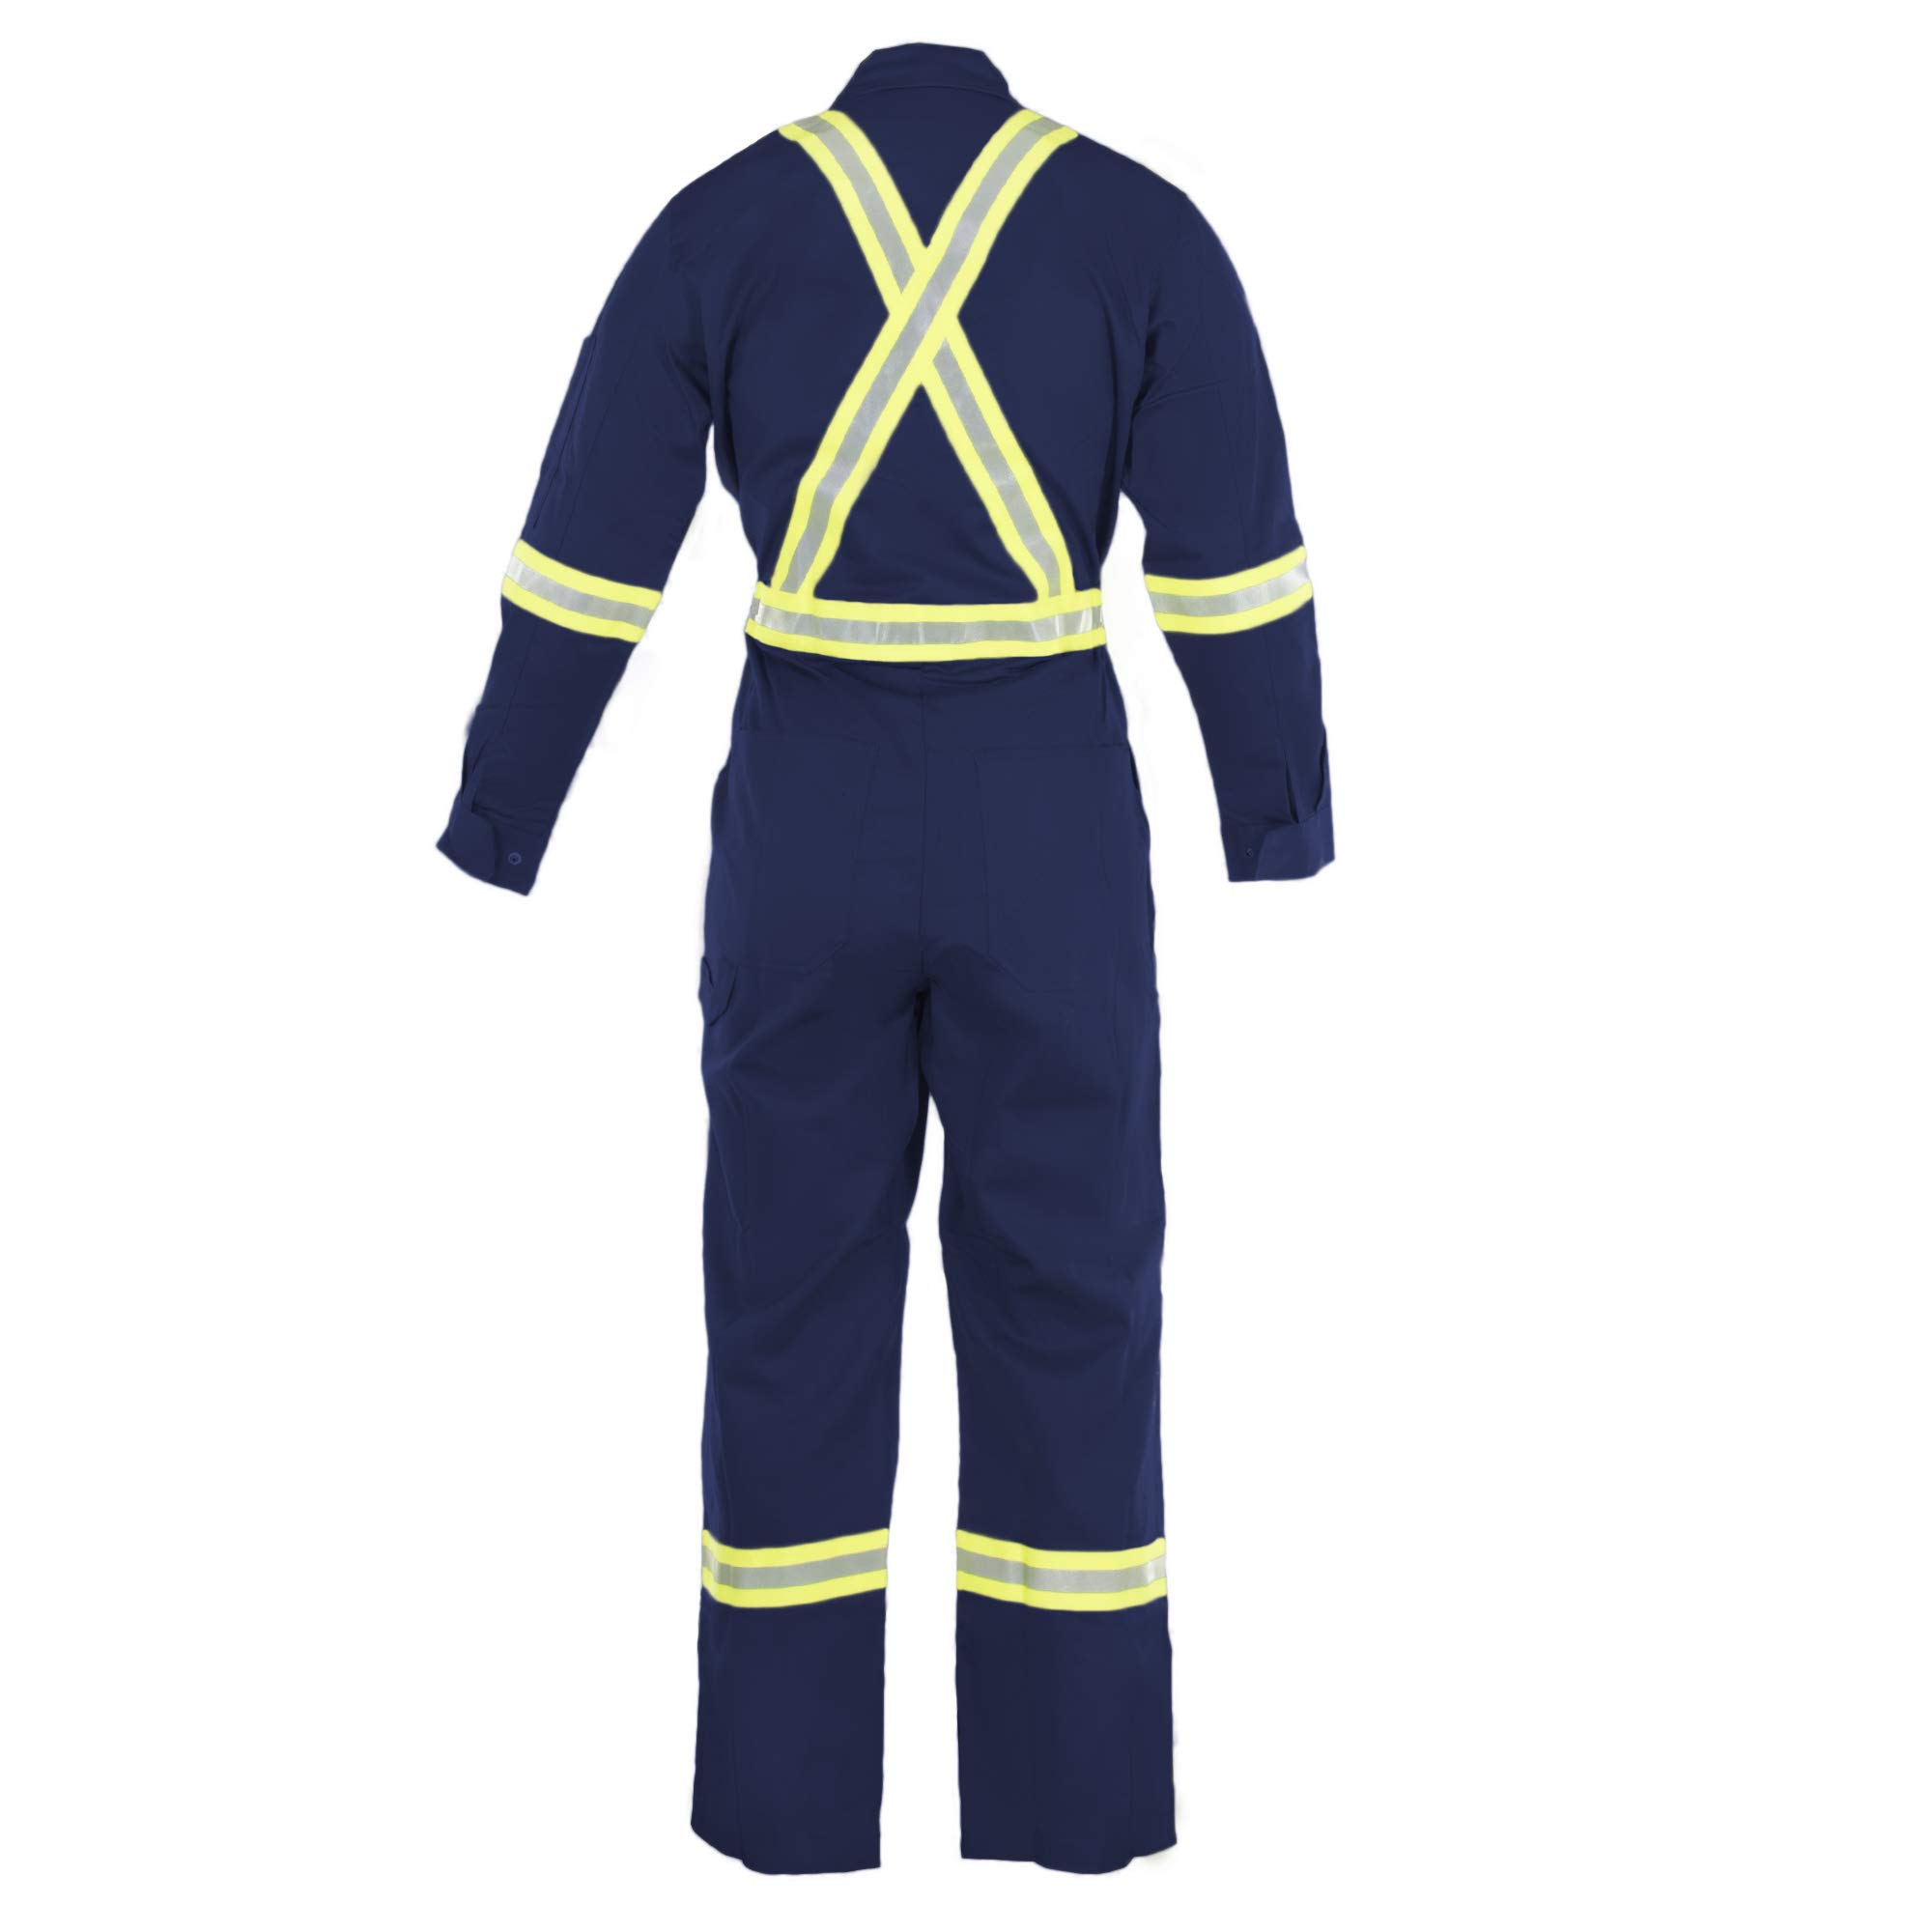 Flame Resistant FR High Visibility Hi Vis Coverall - 88% C/12% N (Large, Navy Blue) by Just In Trend (Image #2)